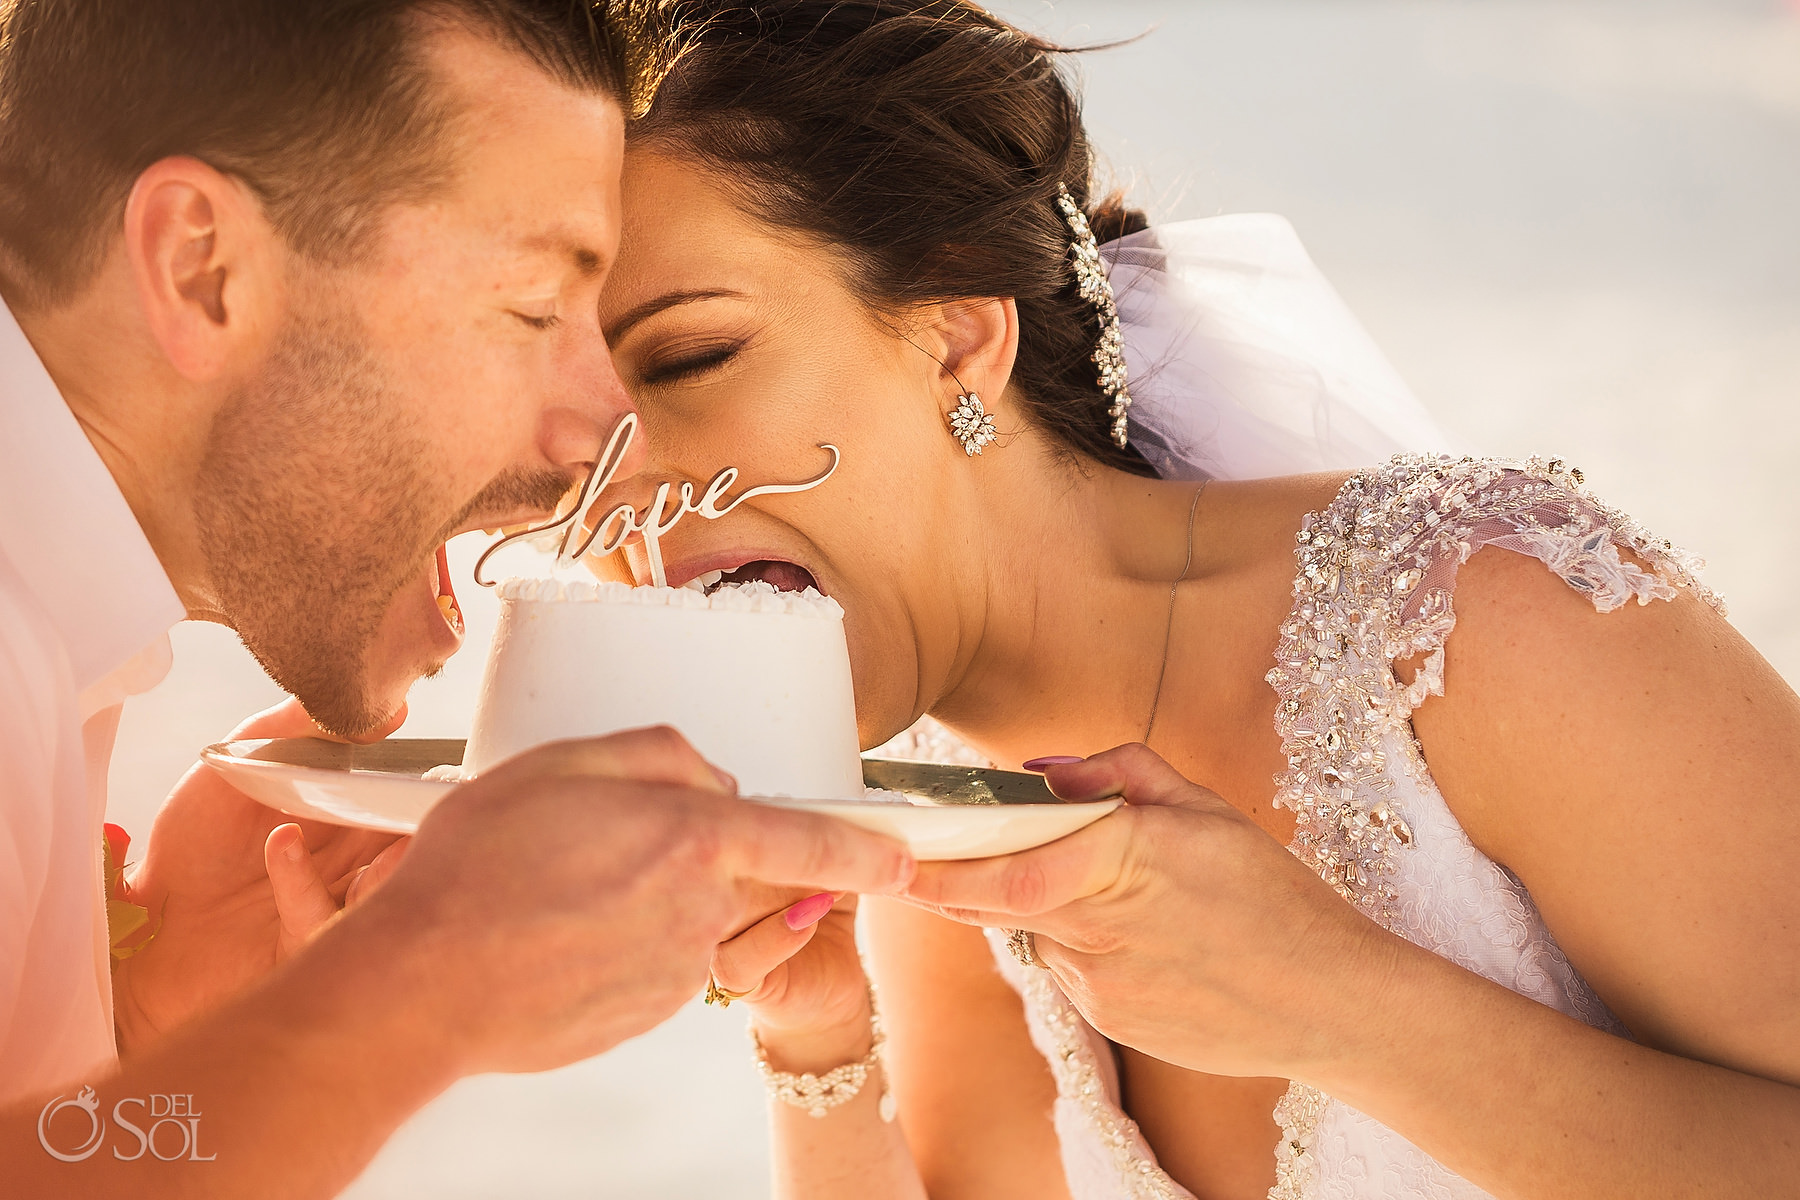 epic cake cutting bride and groom Secrets Maroma Elopement Playa del Carmen Mexico